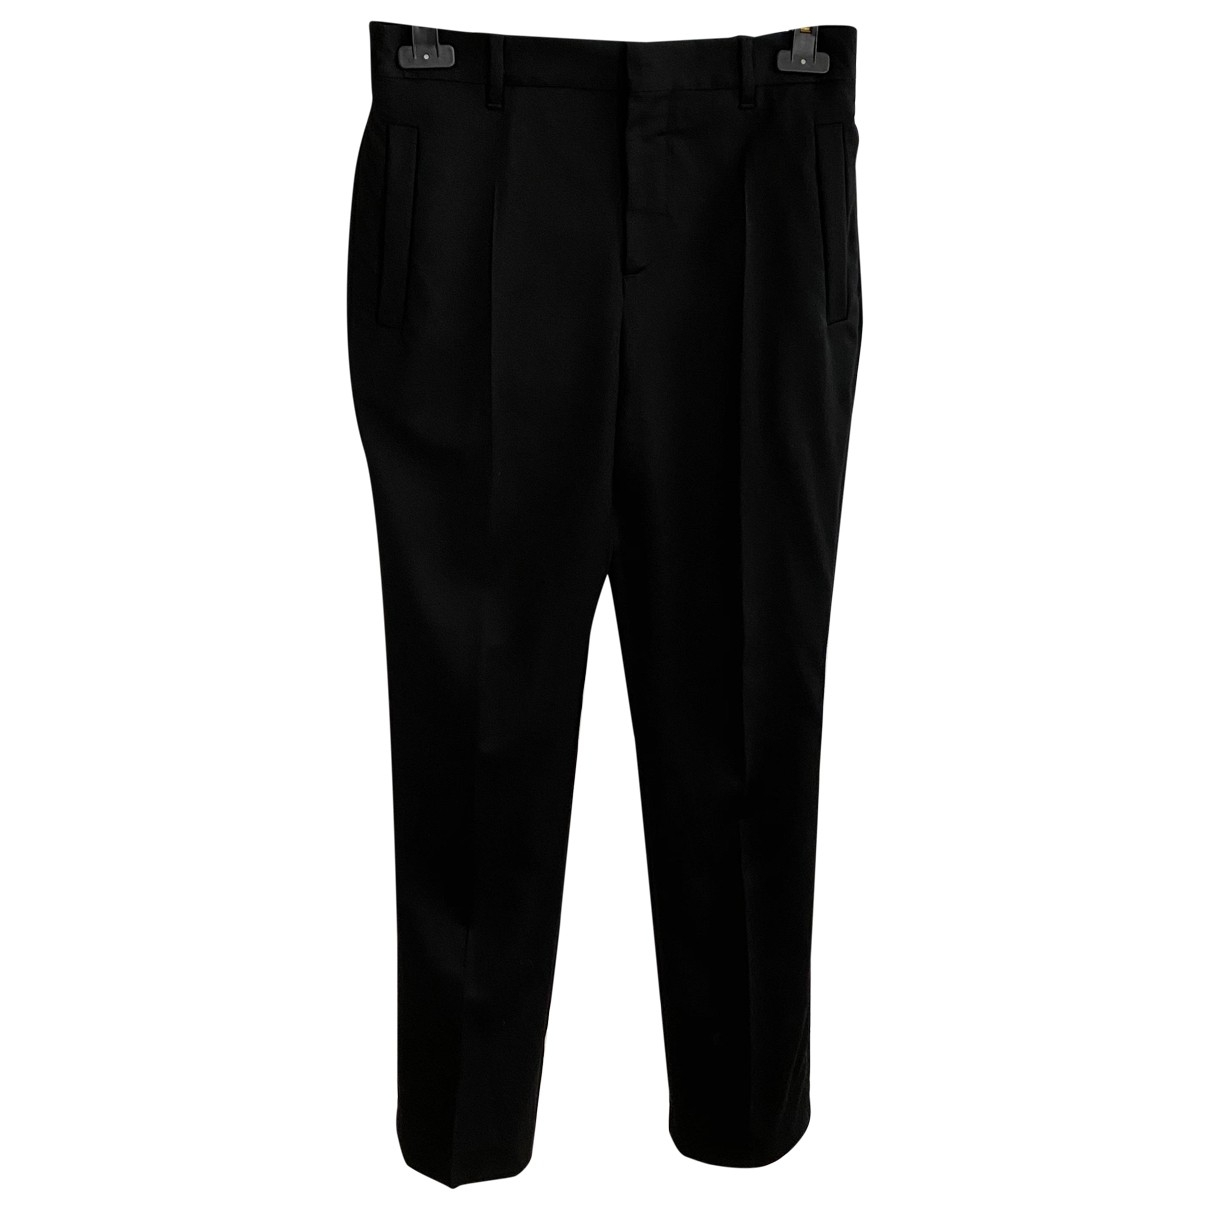 Givenchy \N Black Wool Trousers for Women 36 FR